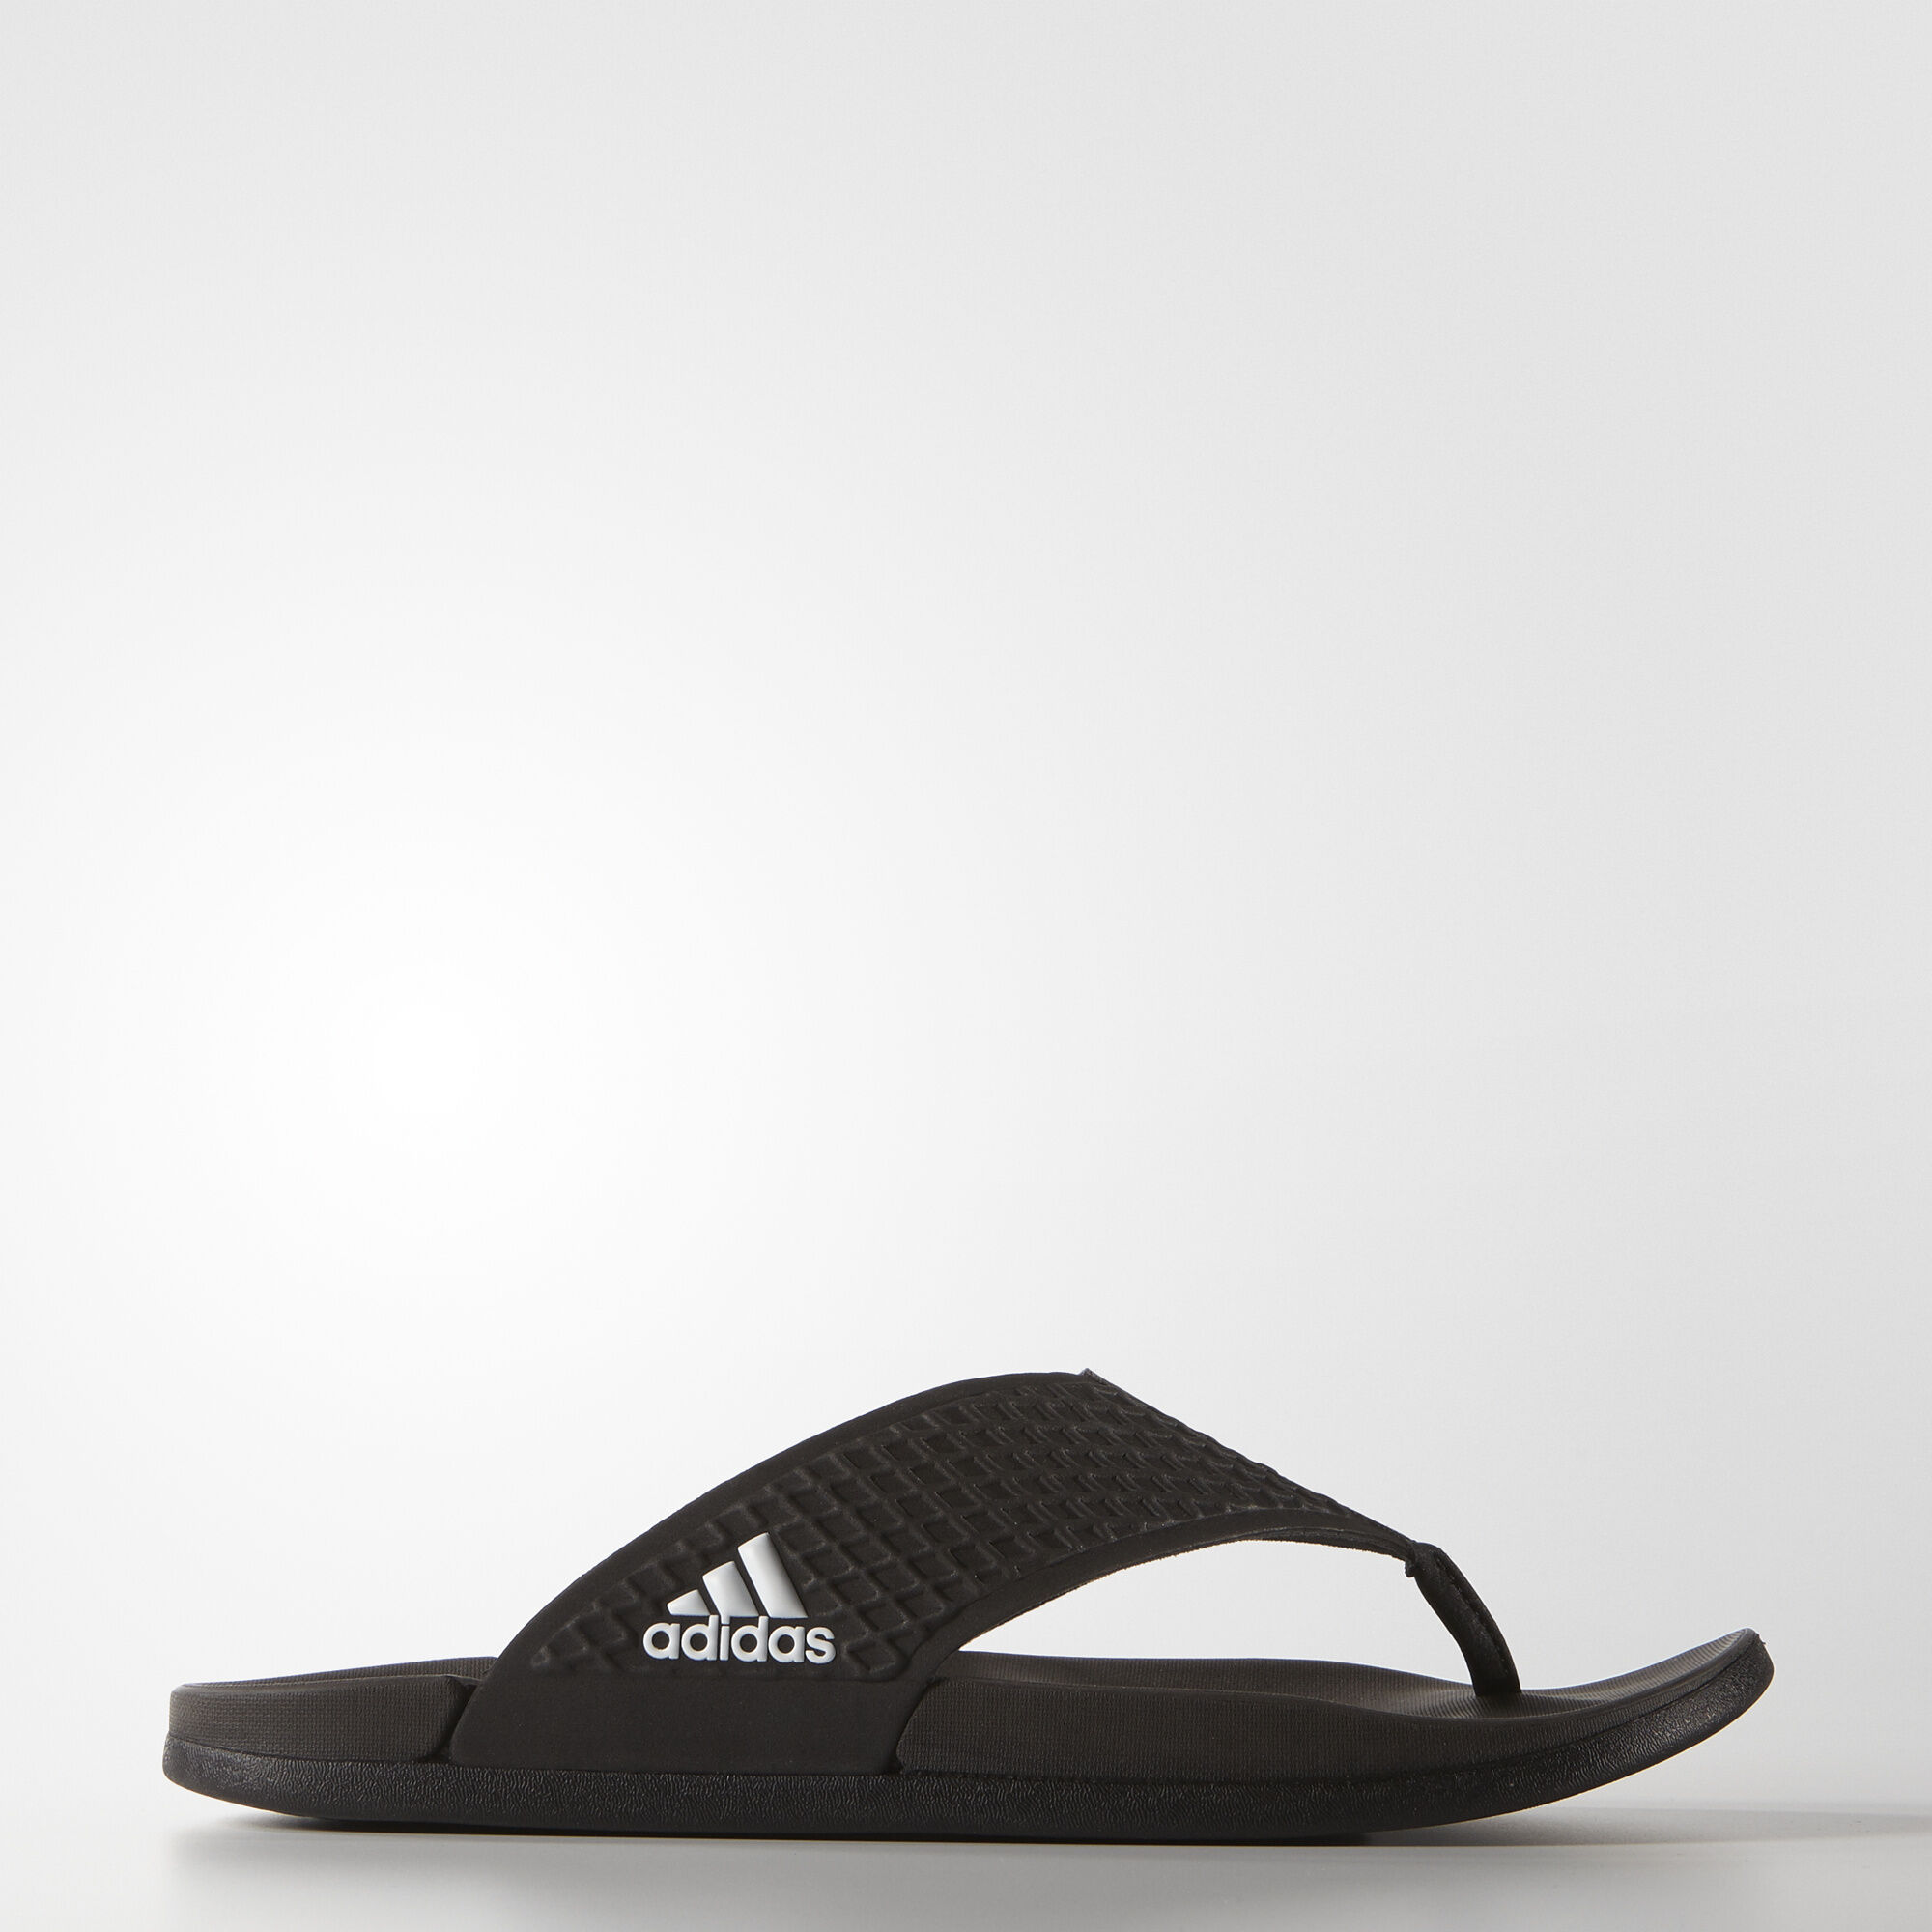 a5209726d0a adidas supercloud flip flops on sale   OFF45% Discounts